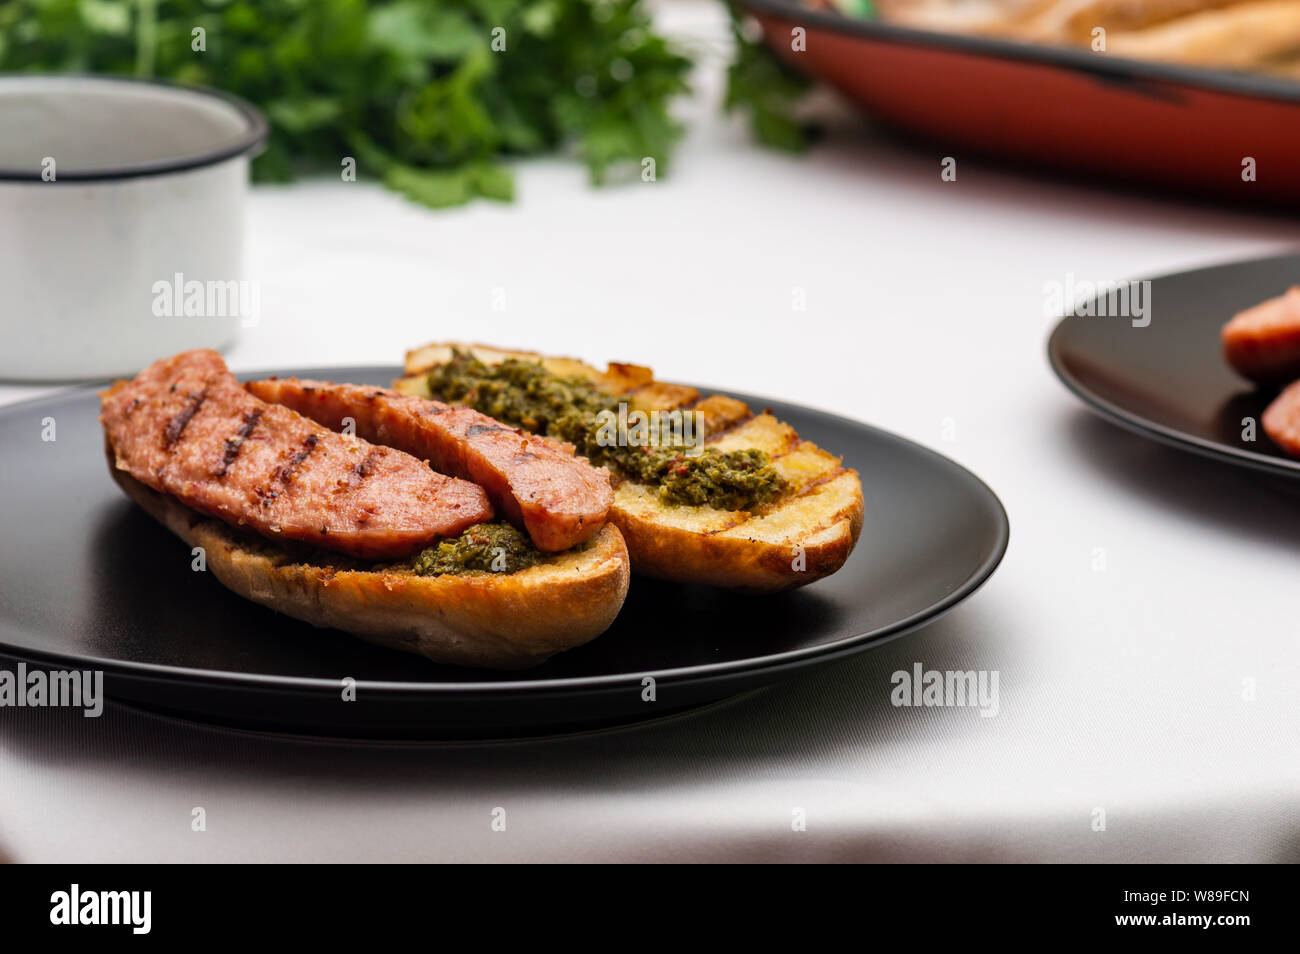 Choripan, south American style chorizo sandwich made with Argentine chorizo sausage with chimichurri, a parsley and olive oil based condiment Stock Photo